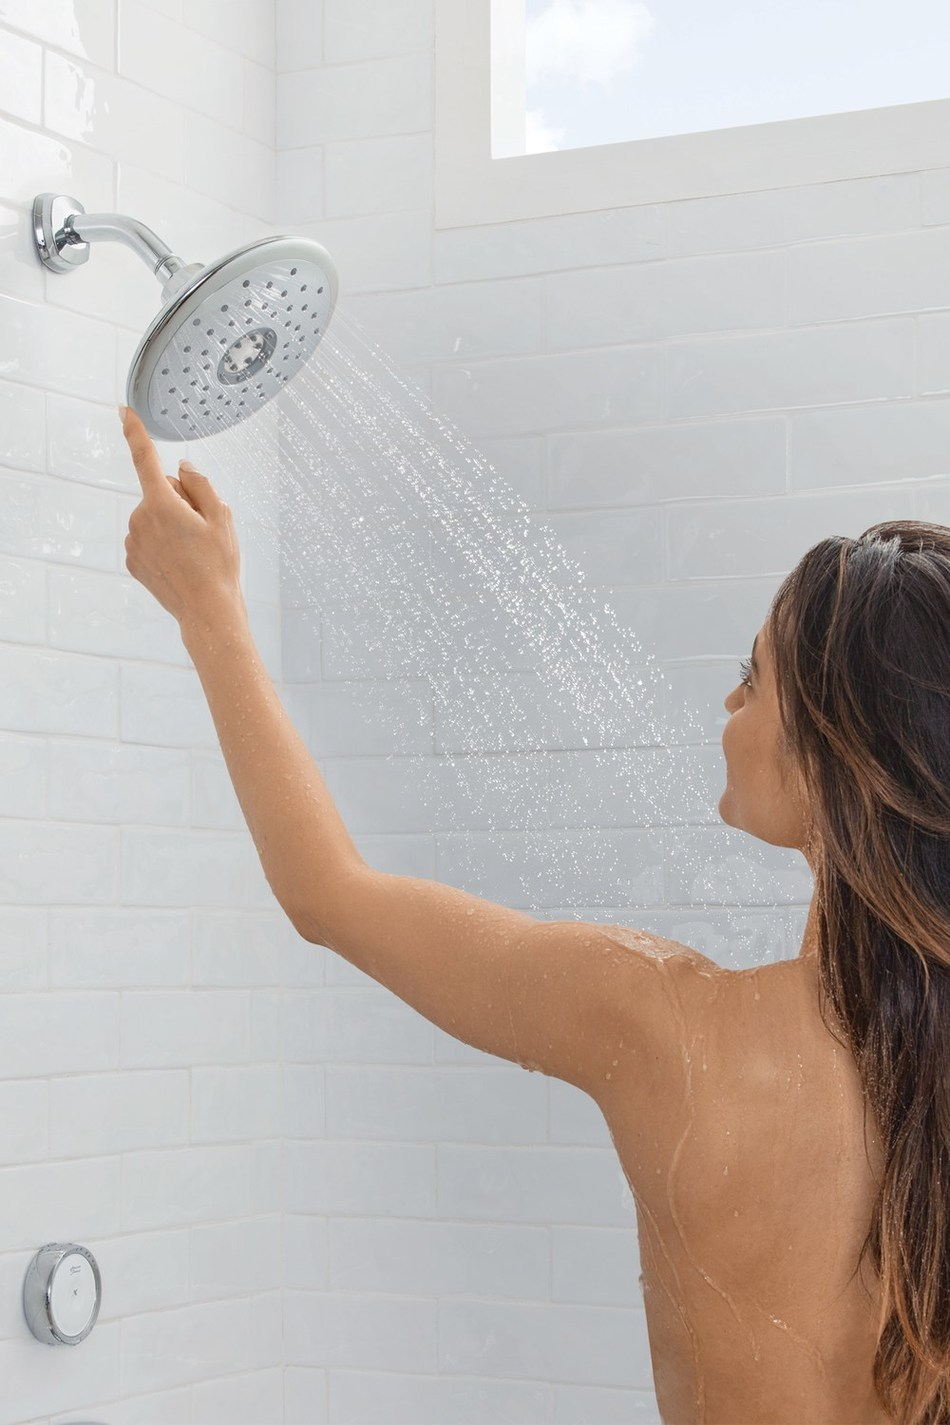 Bringing luxury to the shower experience, the American Standard Spectra+ eTouch showerhead features industry-first technology allowing users to change spray patterns with a touch of the fixture itself, or on the convenient remote.